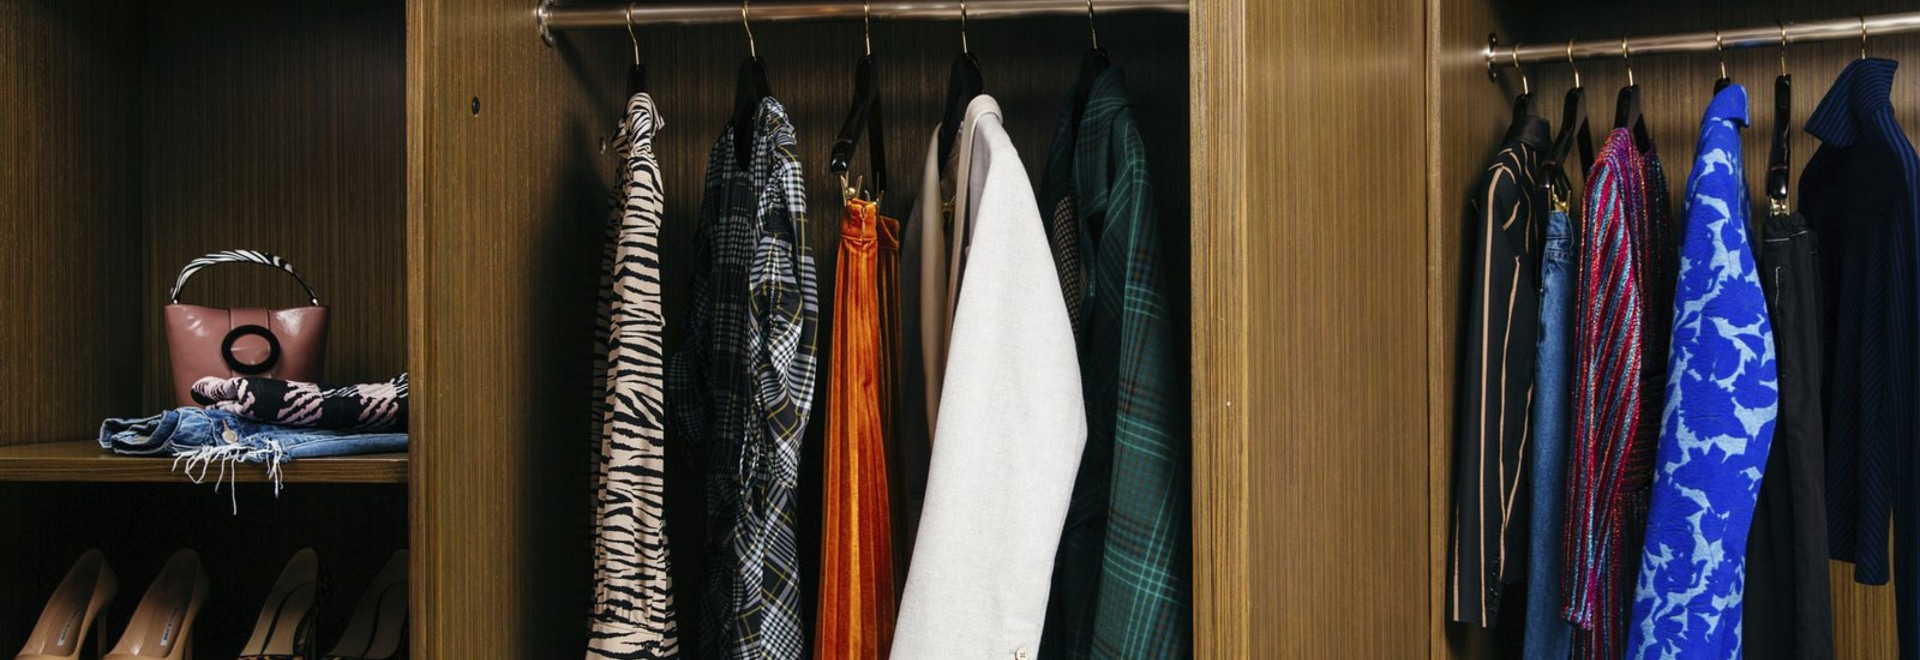 Packing Is a Thing of the Past Thanks to This Collaboration Between Rent the Runway and W Hotels